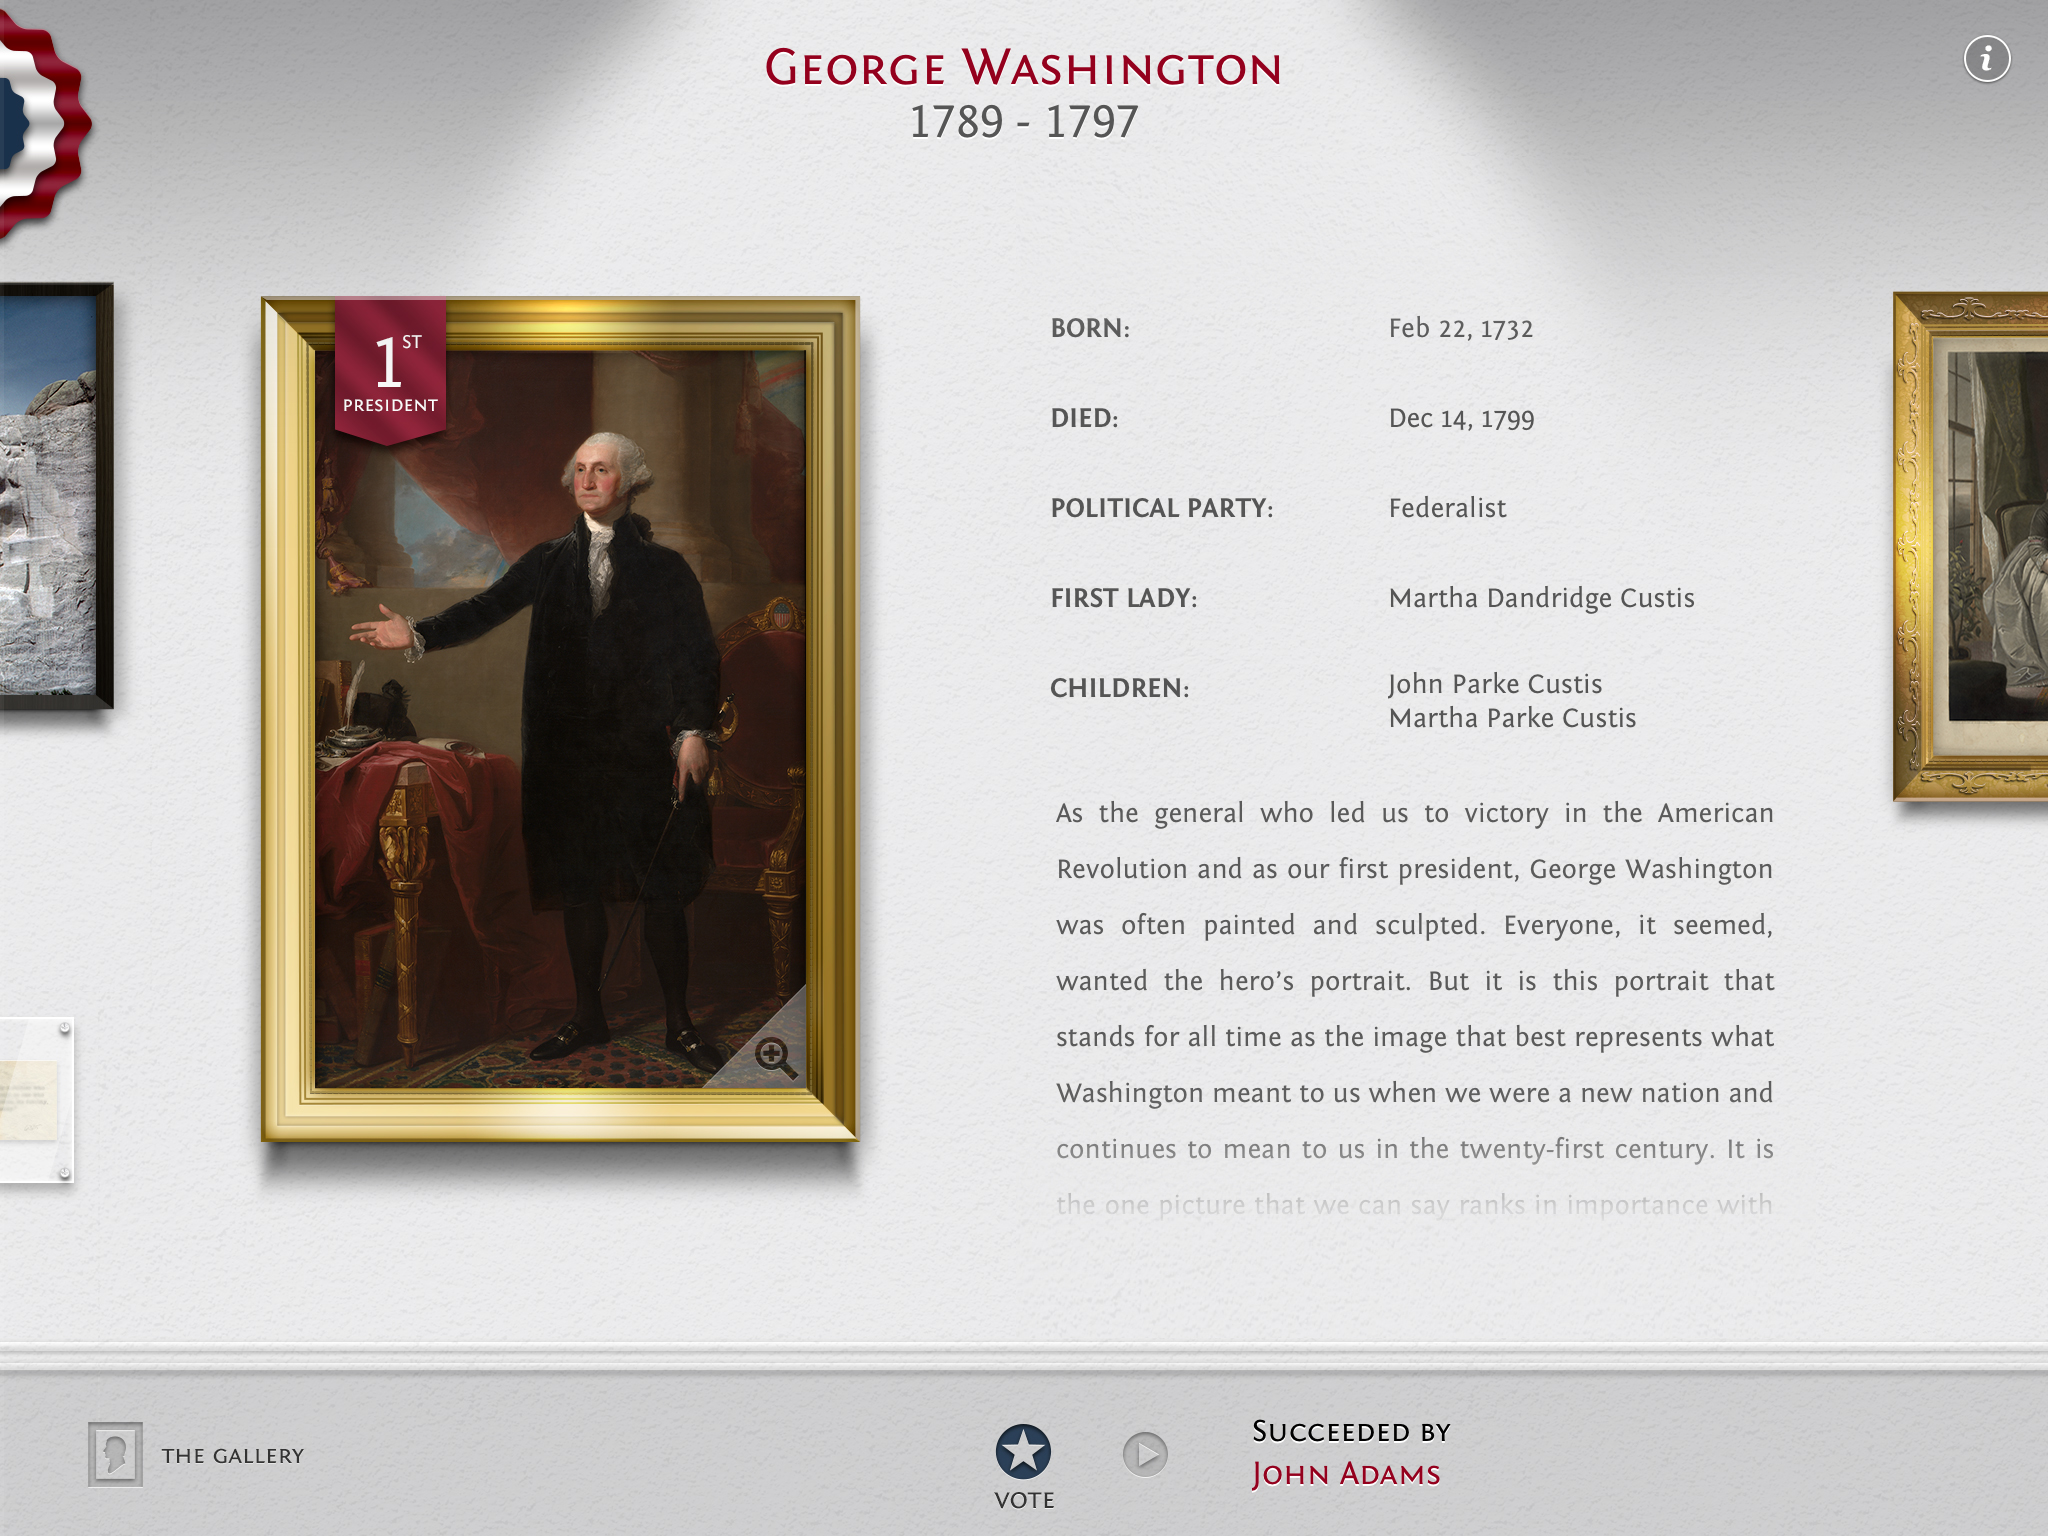 Americas-Presidents-Screenshot-013.jpg